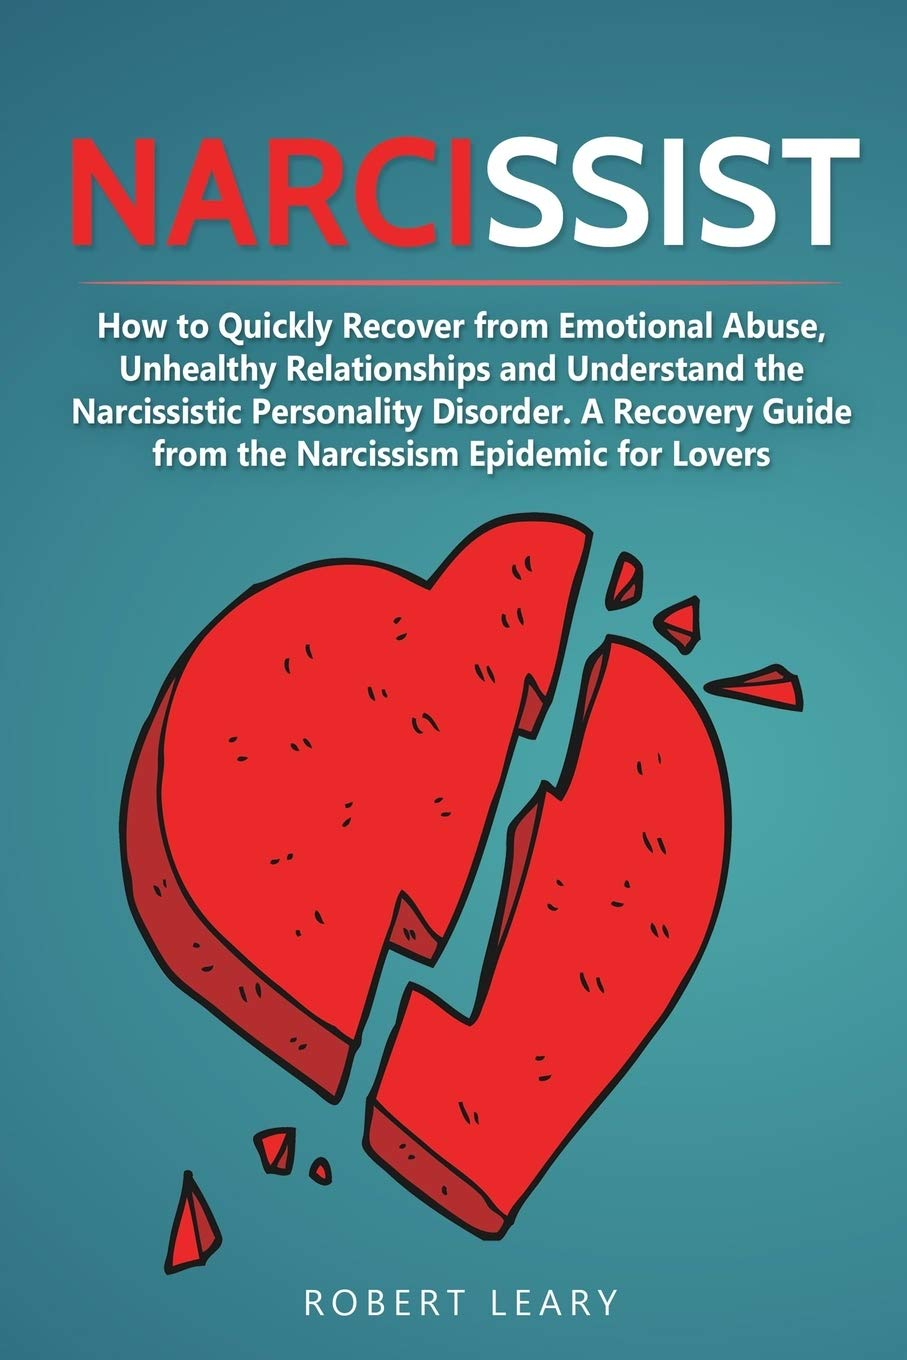 Narcissist How To Quickly Recover From Emotional Abuse Unhealthy Relationships And Understand The Narcissistic Personality Disorder A Recovery Guide From The Narcissism Epidemic For Lovers Leary Robert 9781698643083 Amazon Com Books